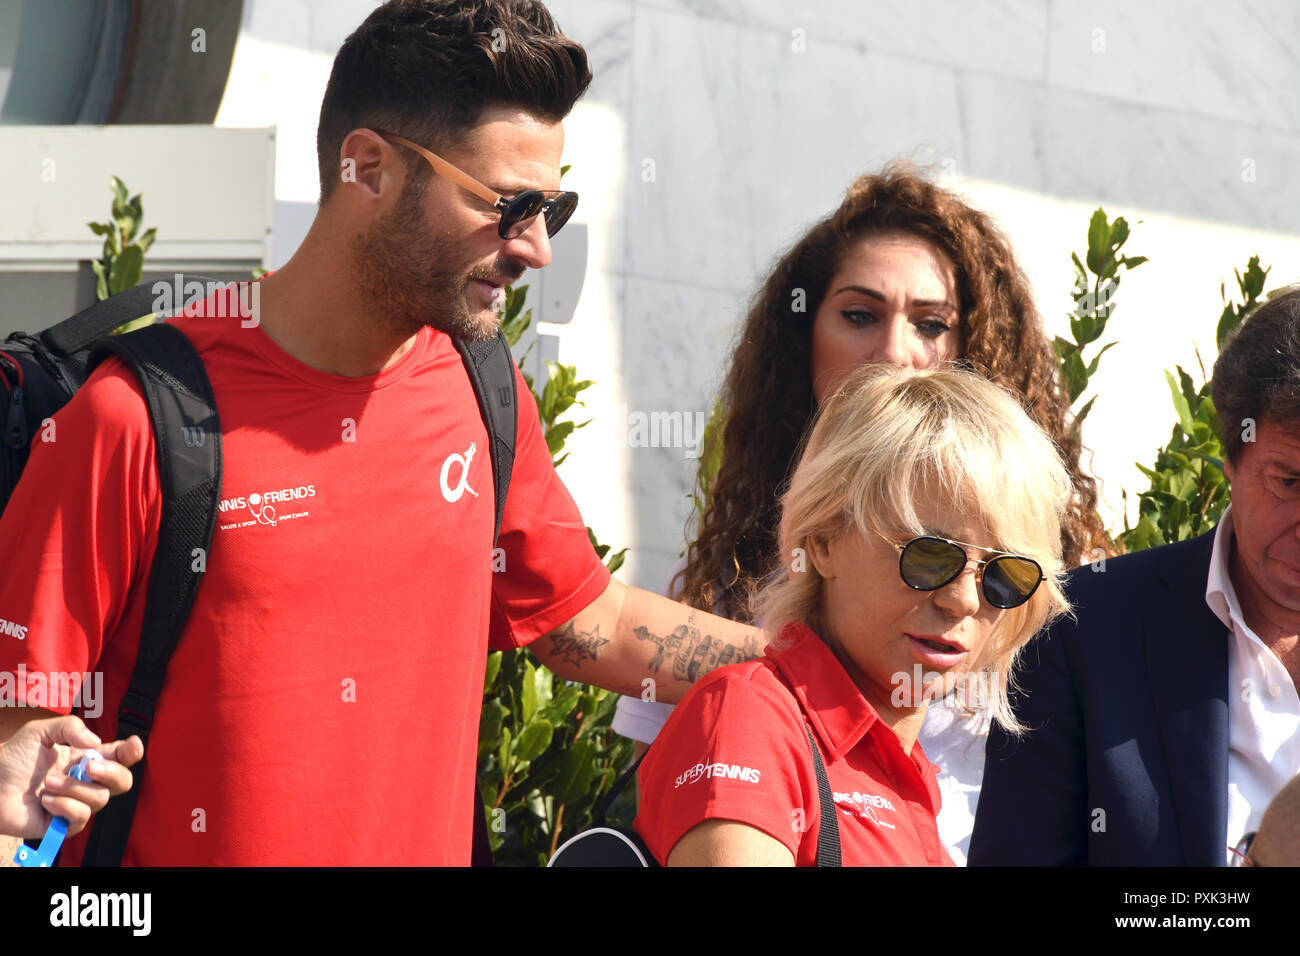 Maria De Filippi And Filippo Bisciglia High Resolution Stock Photography And Images Alamy